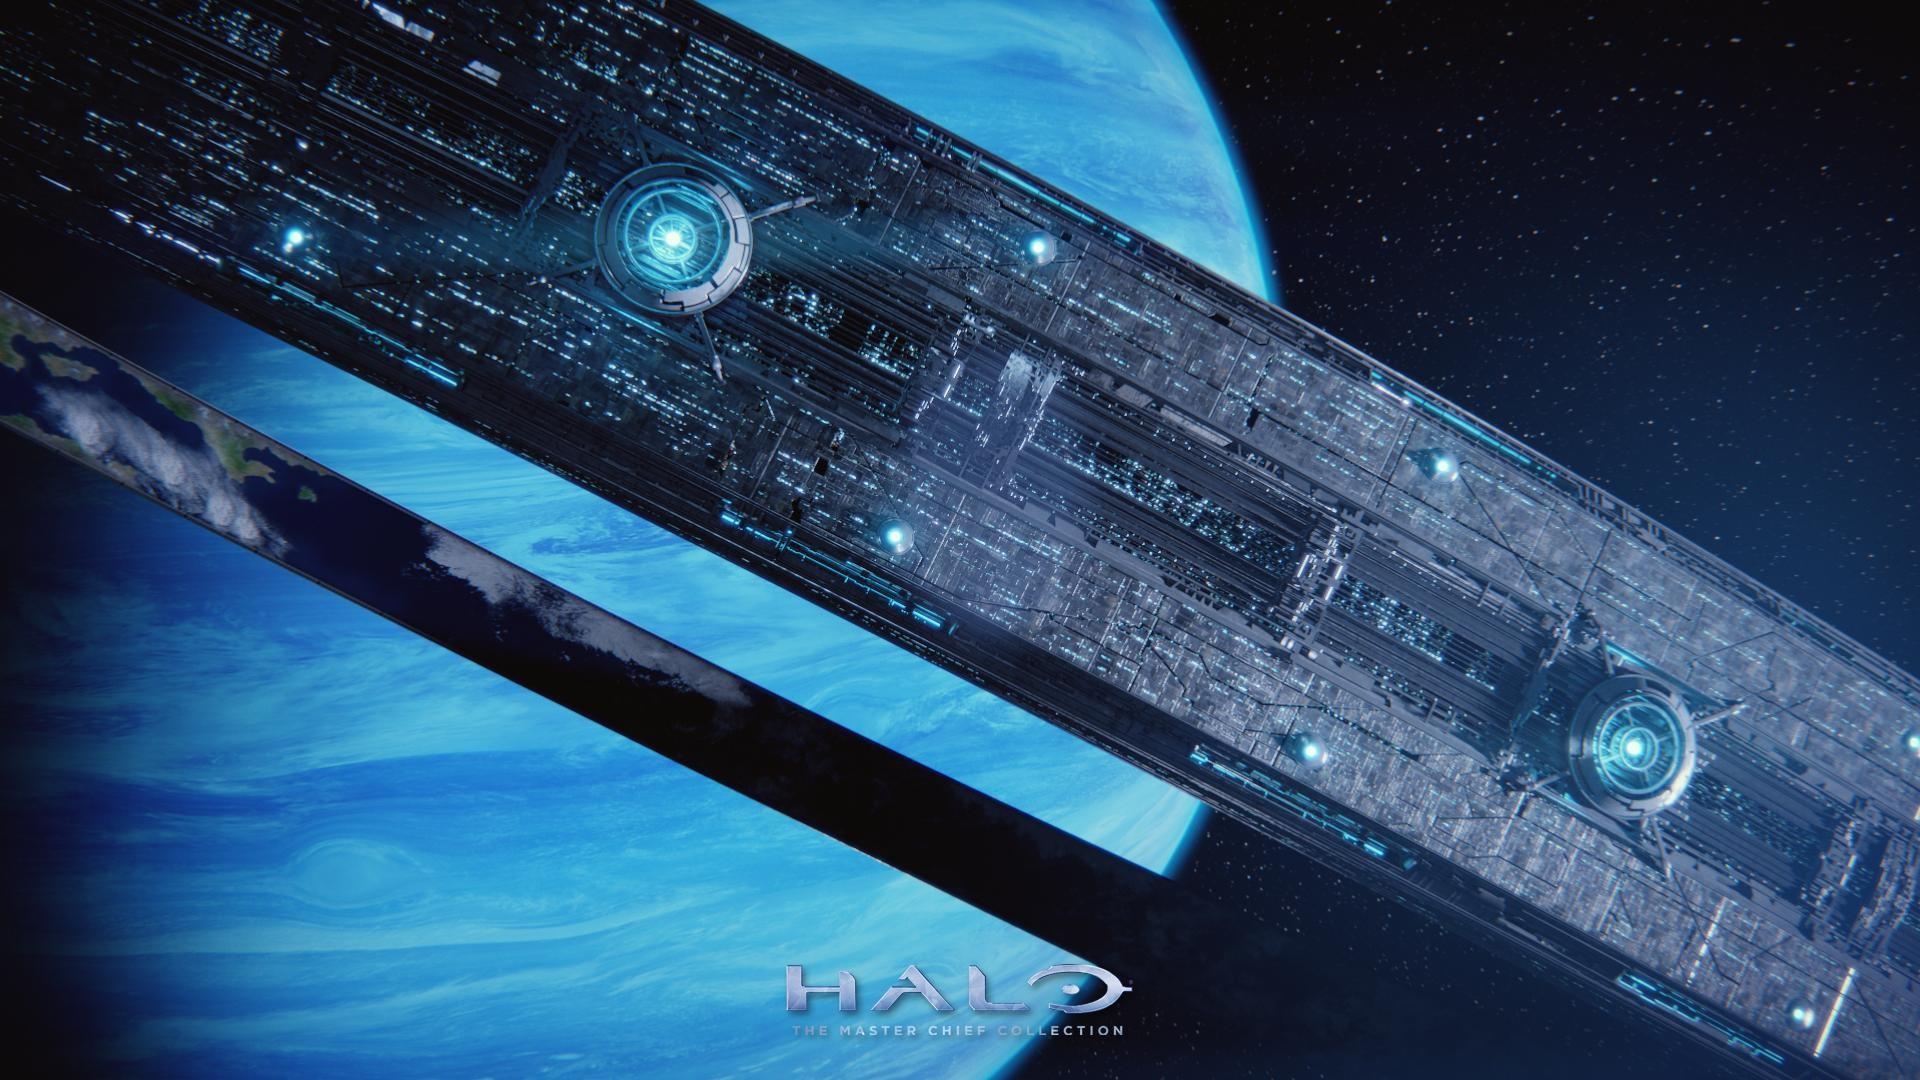 Halo Ring HD Images Wallpapers 14417 – Amazing Wallpaperz